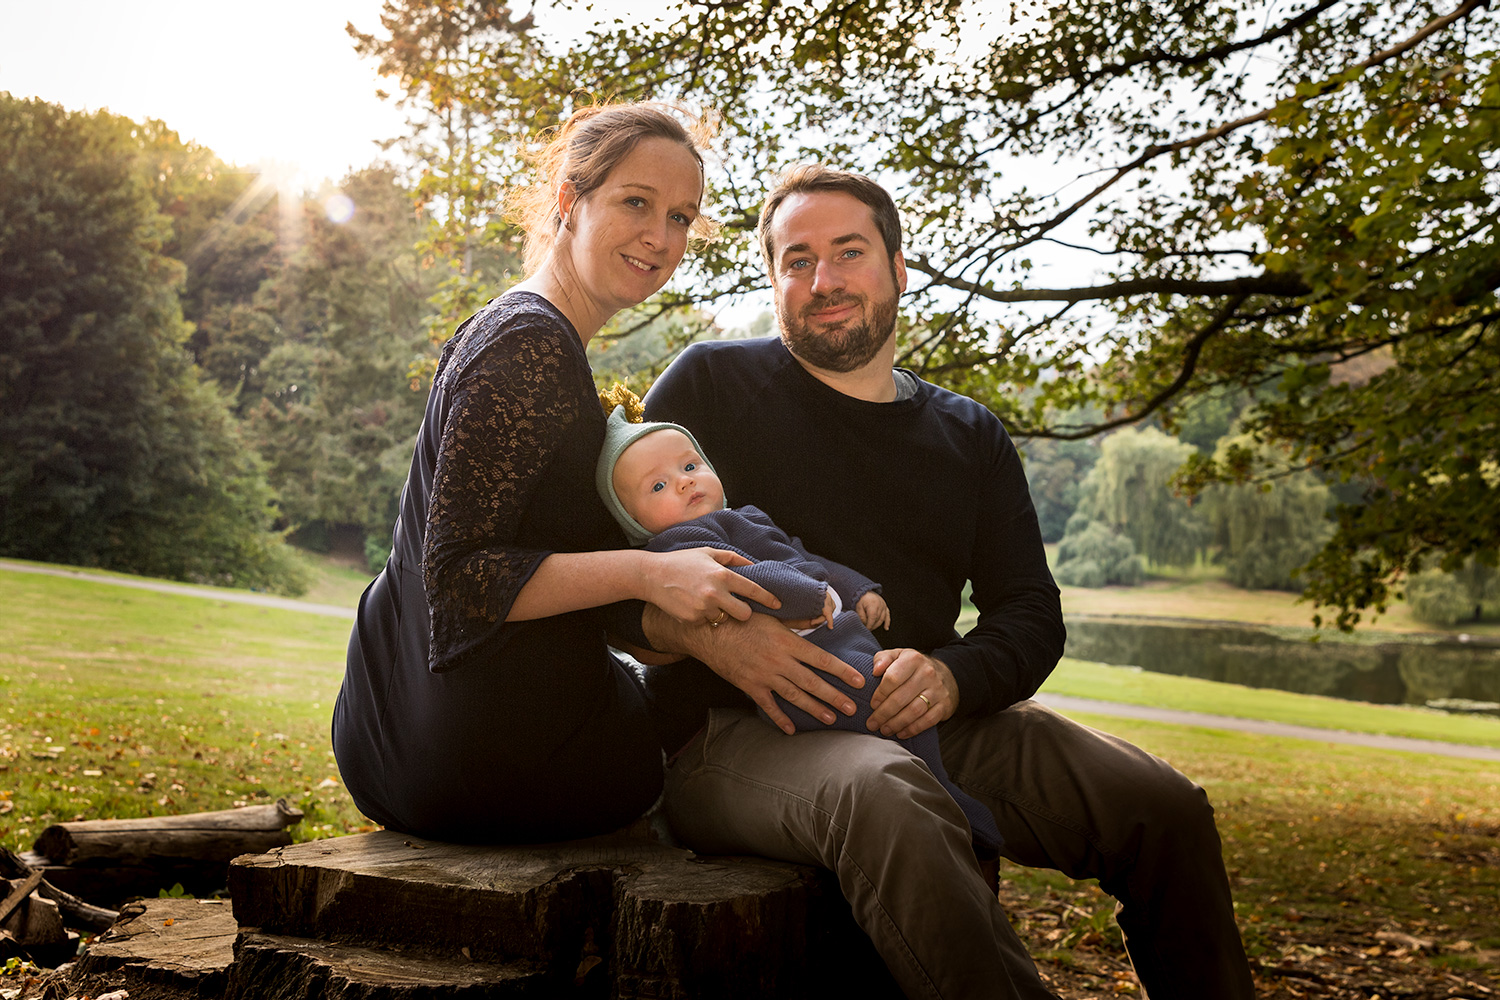 Family photo shooting in park at sunset - Autumn colors